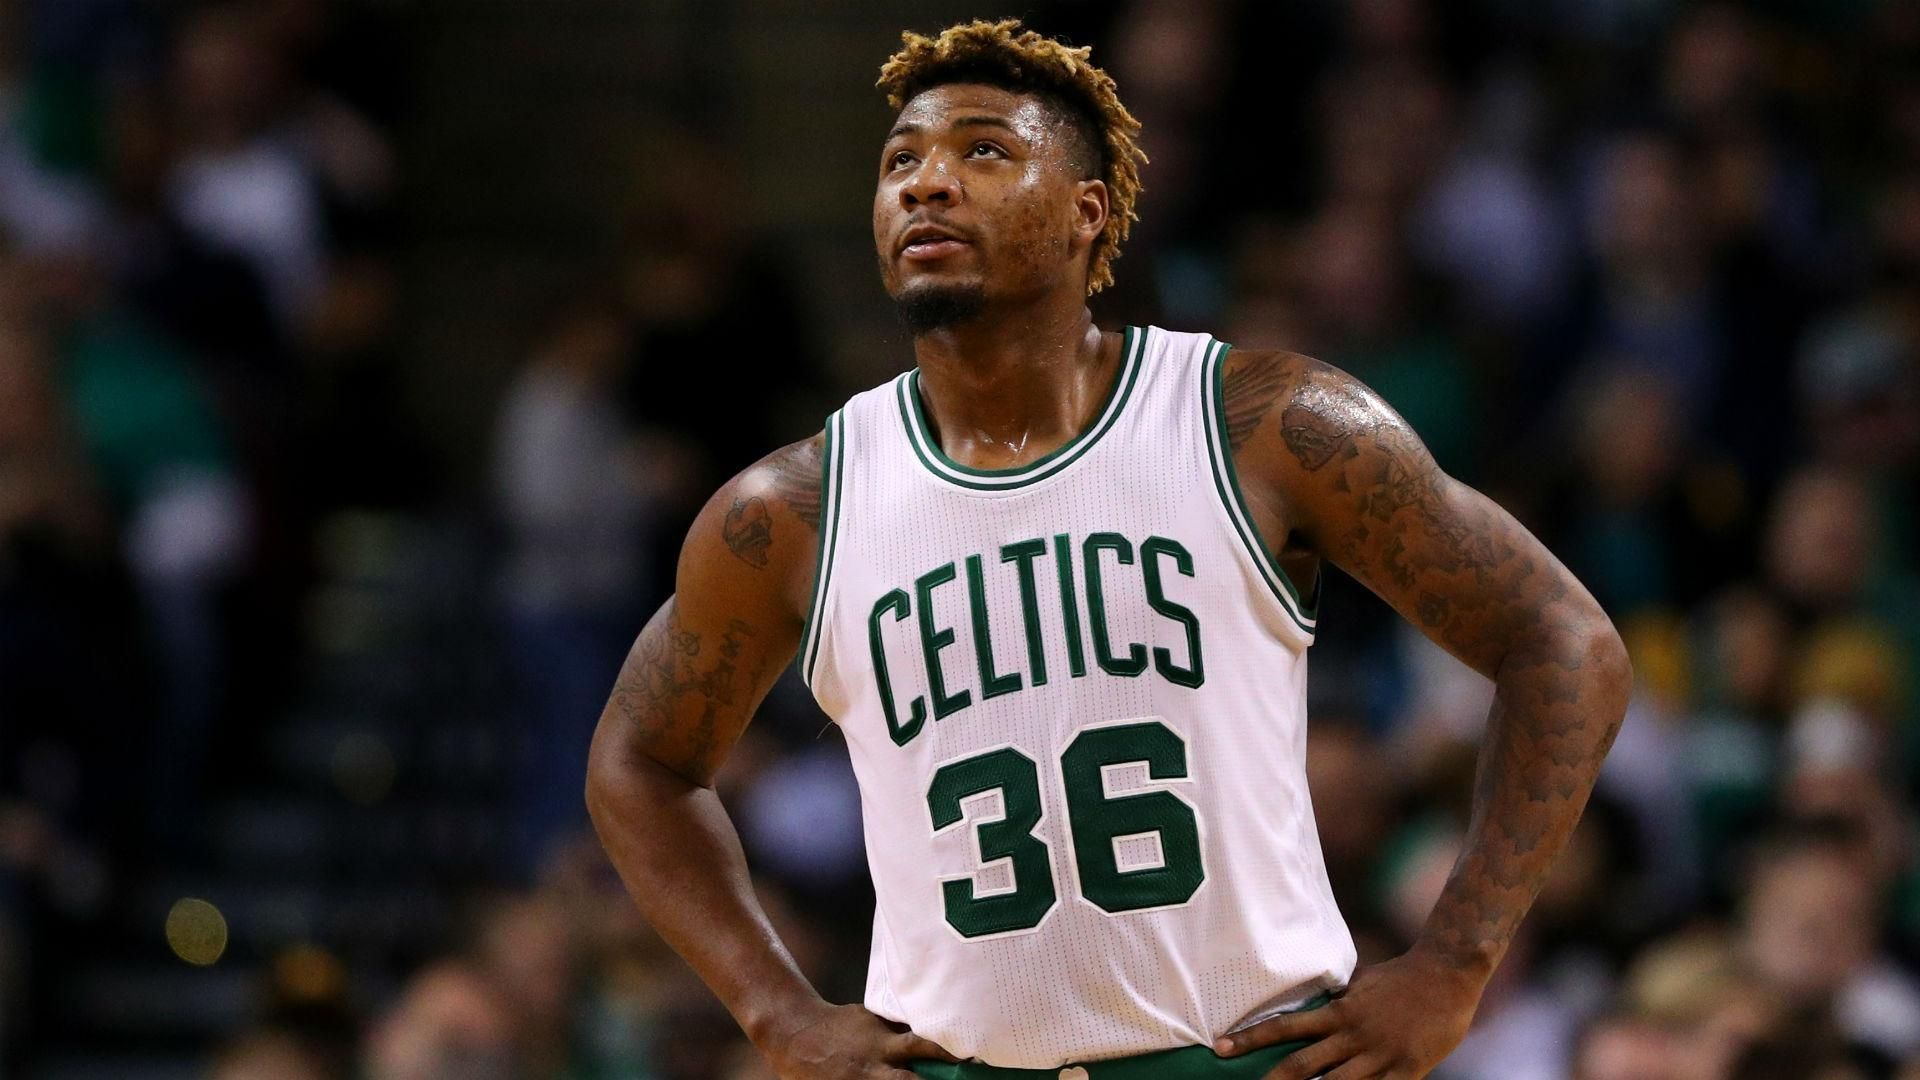 NBA trade rumors Celtics could end up dealing Marcus Smart